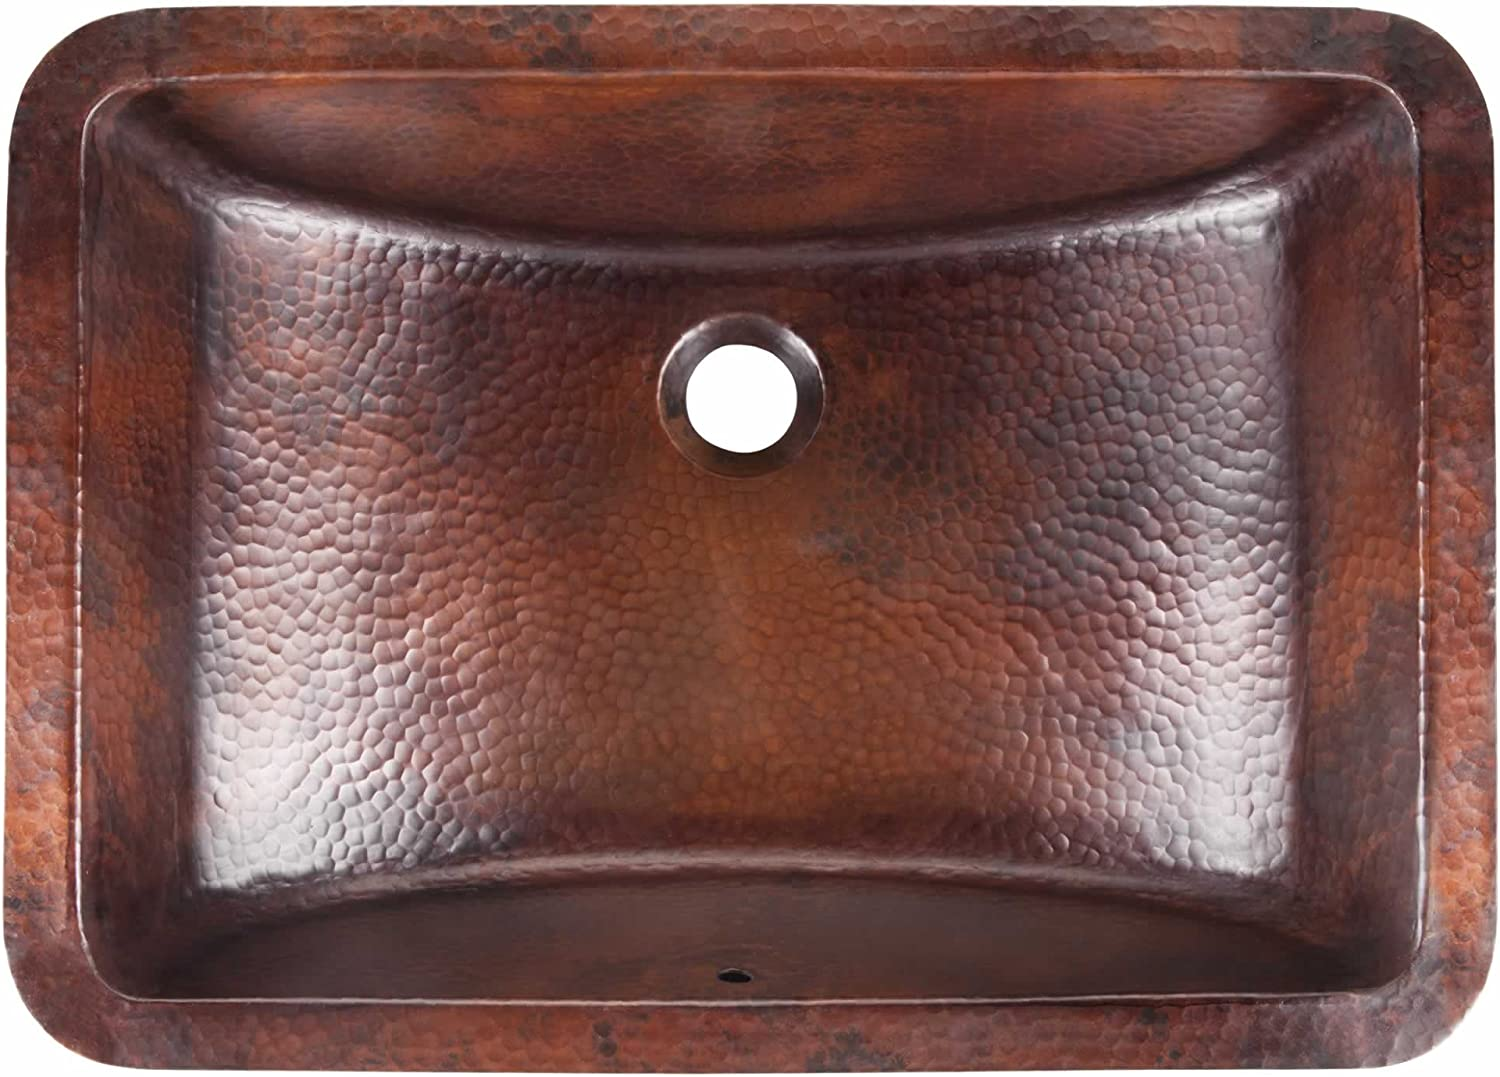 Sinkology SB206-21AG Curie Undermount Handmade Pure Solid Bath Sink with Overflow 21 Aged Copper